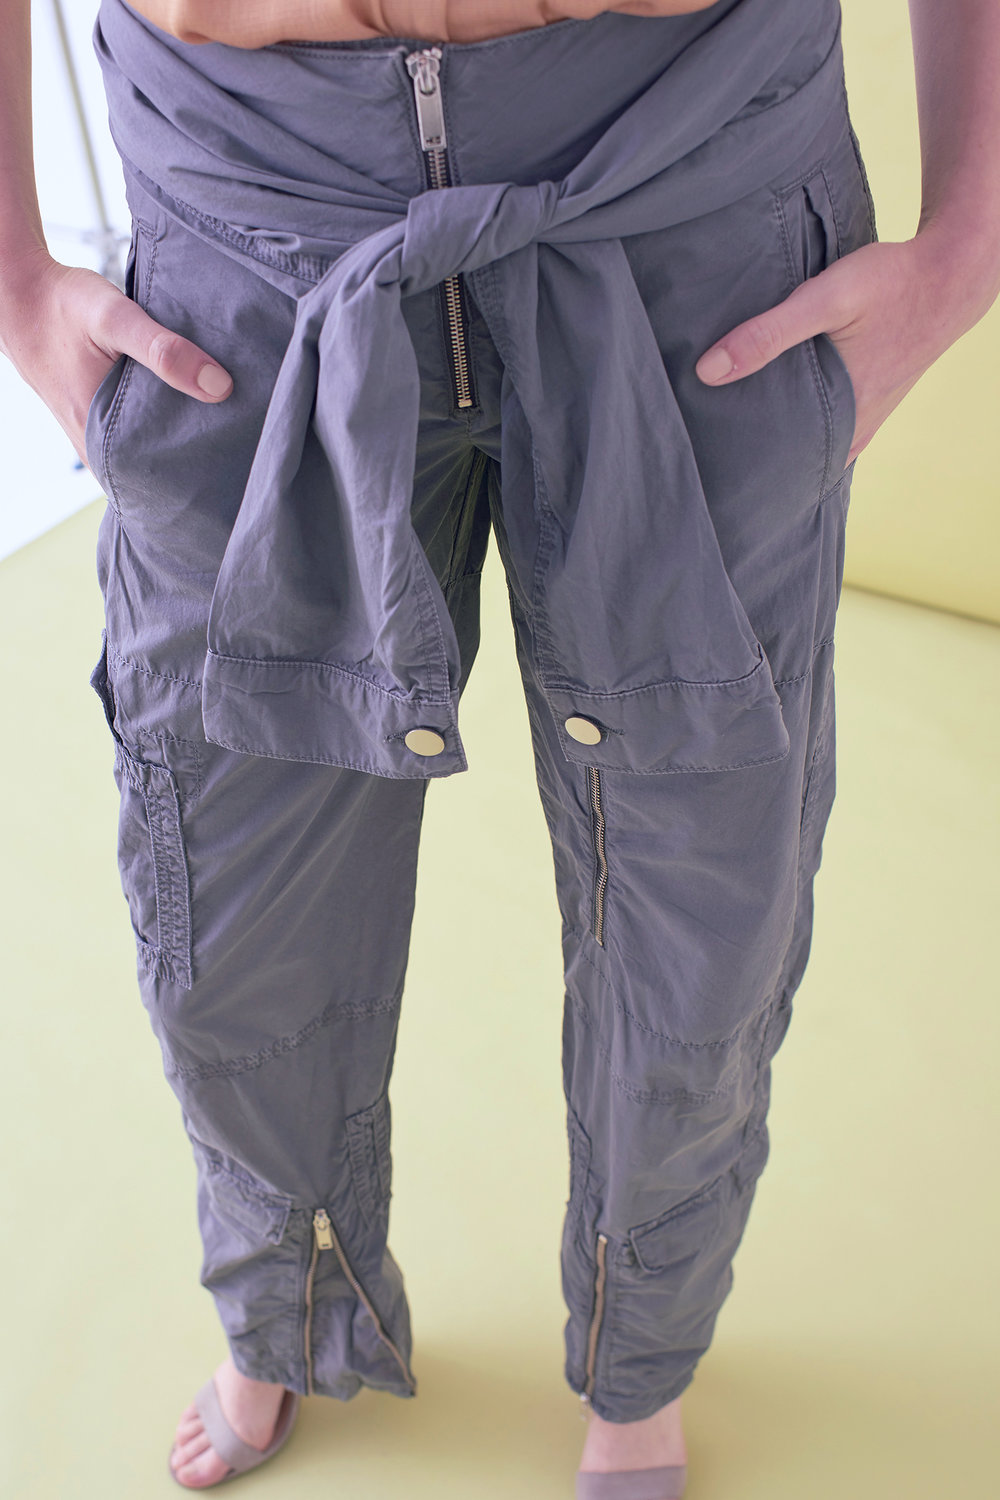 UTILITY TROUSER   – IN STOCK